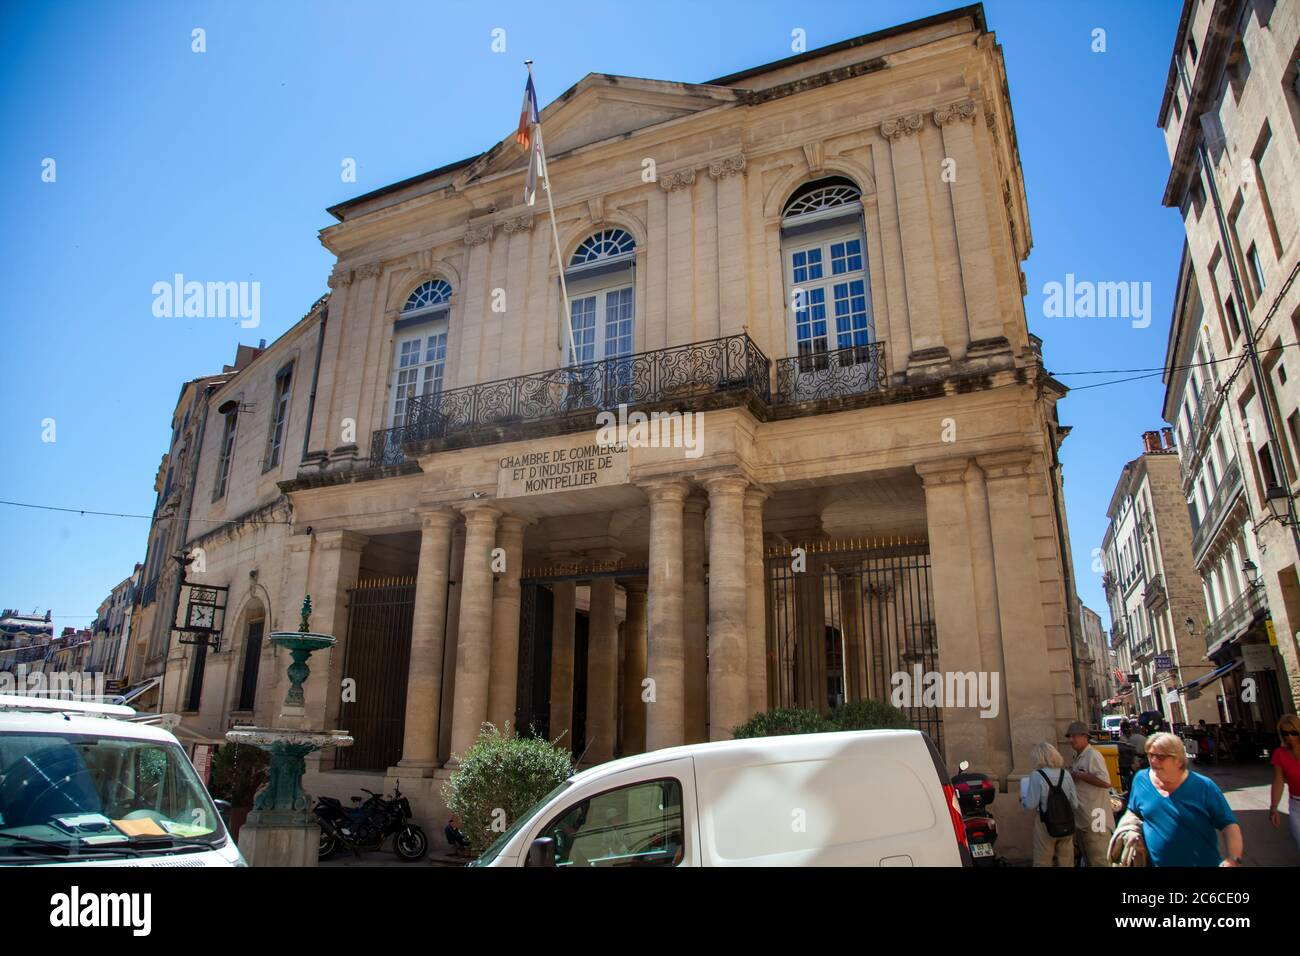 Page 3 France Montpellier Old Town High Resolution Stock Photography And Images Alamy